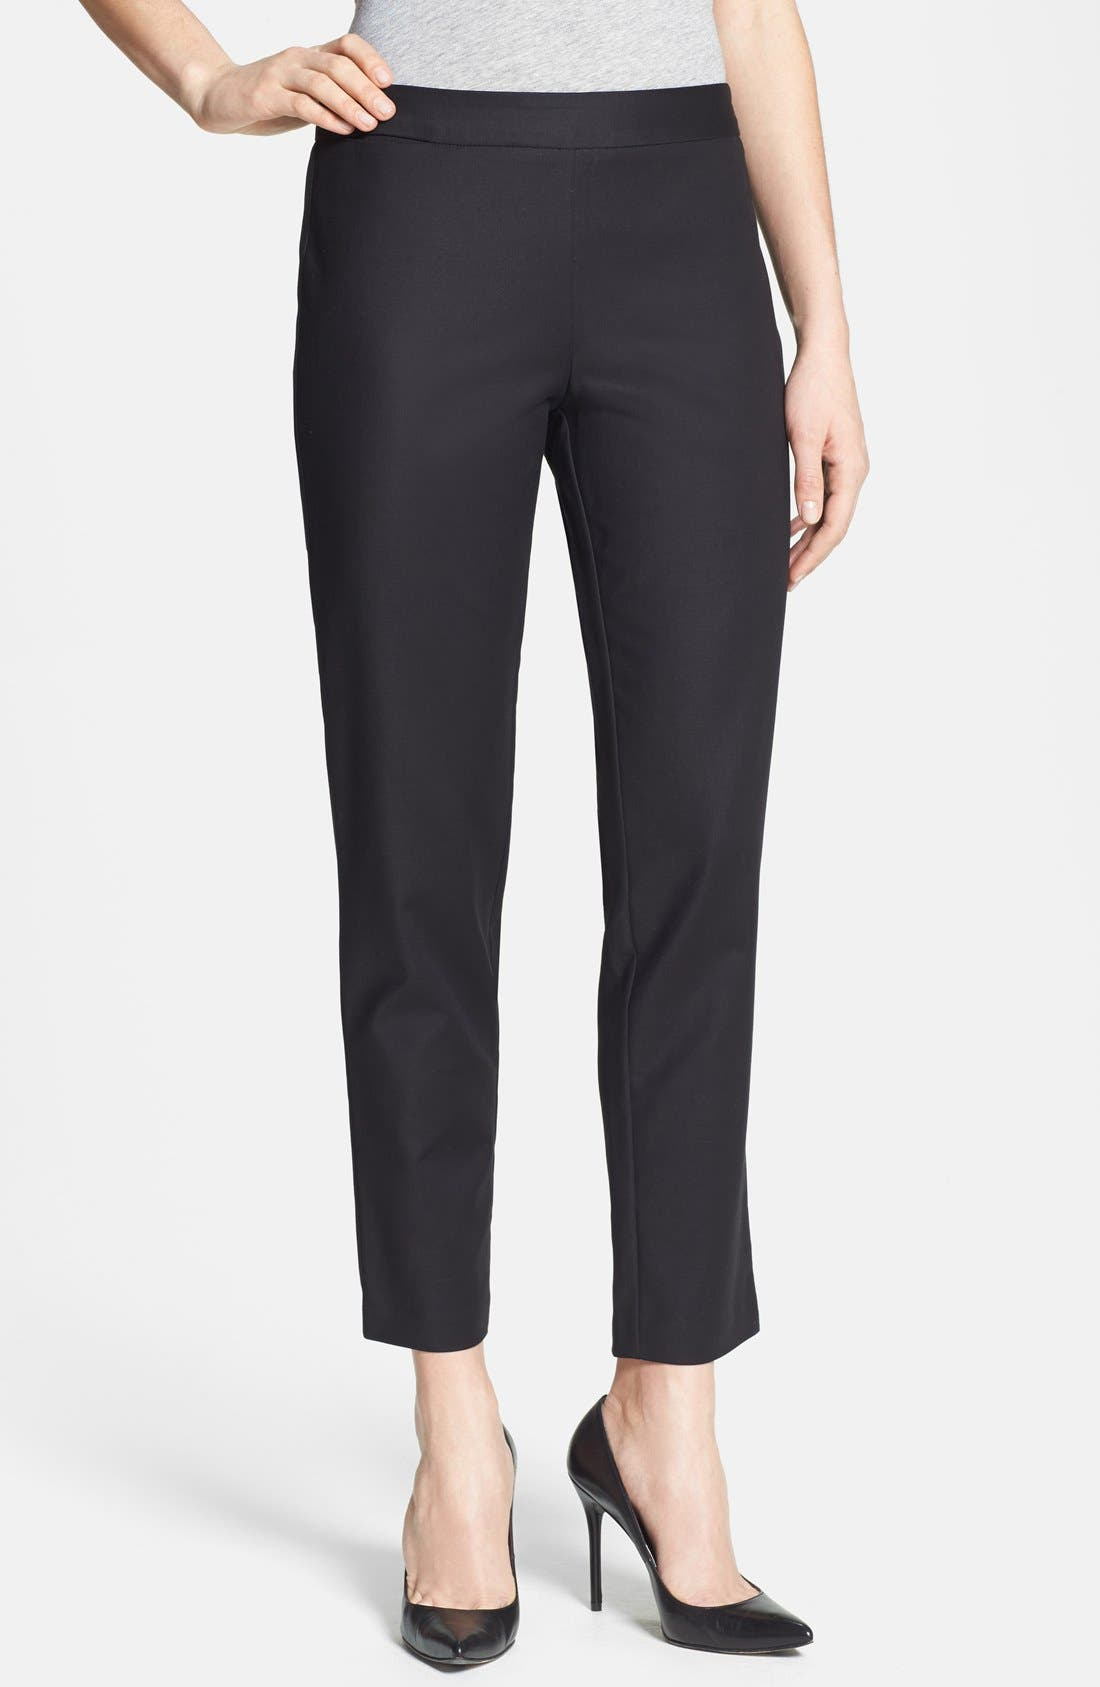 Alternate Image 1 Selected - Kenneth Cole New York 'Khloee' Ankle Pants (Petite)